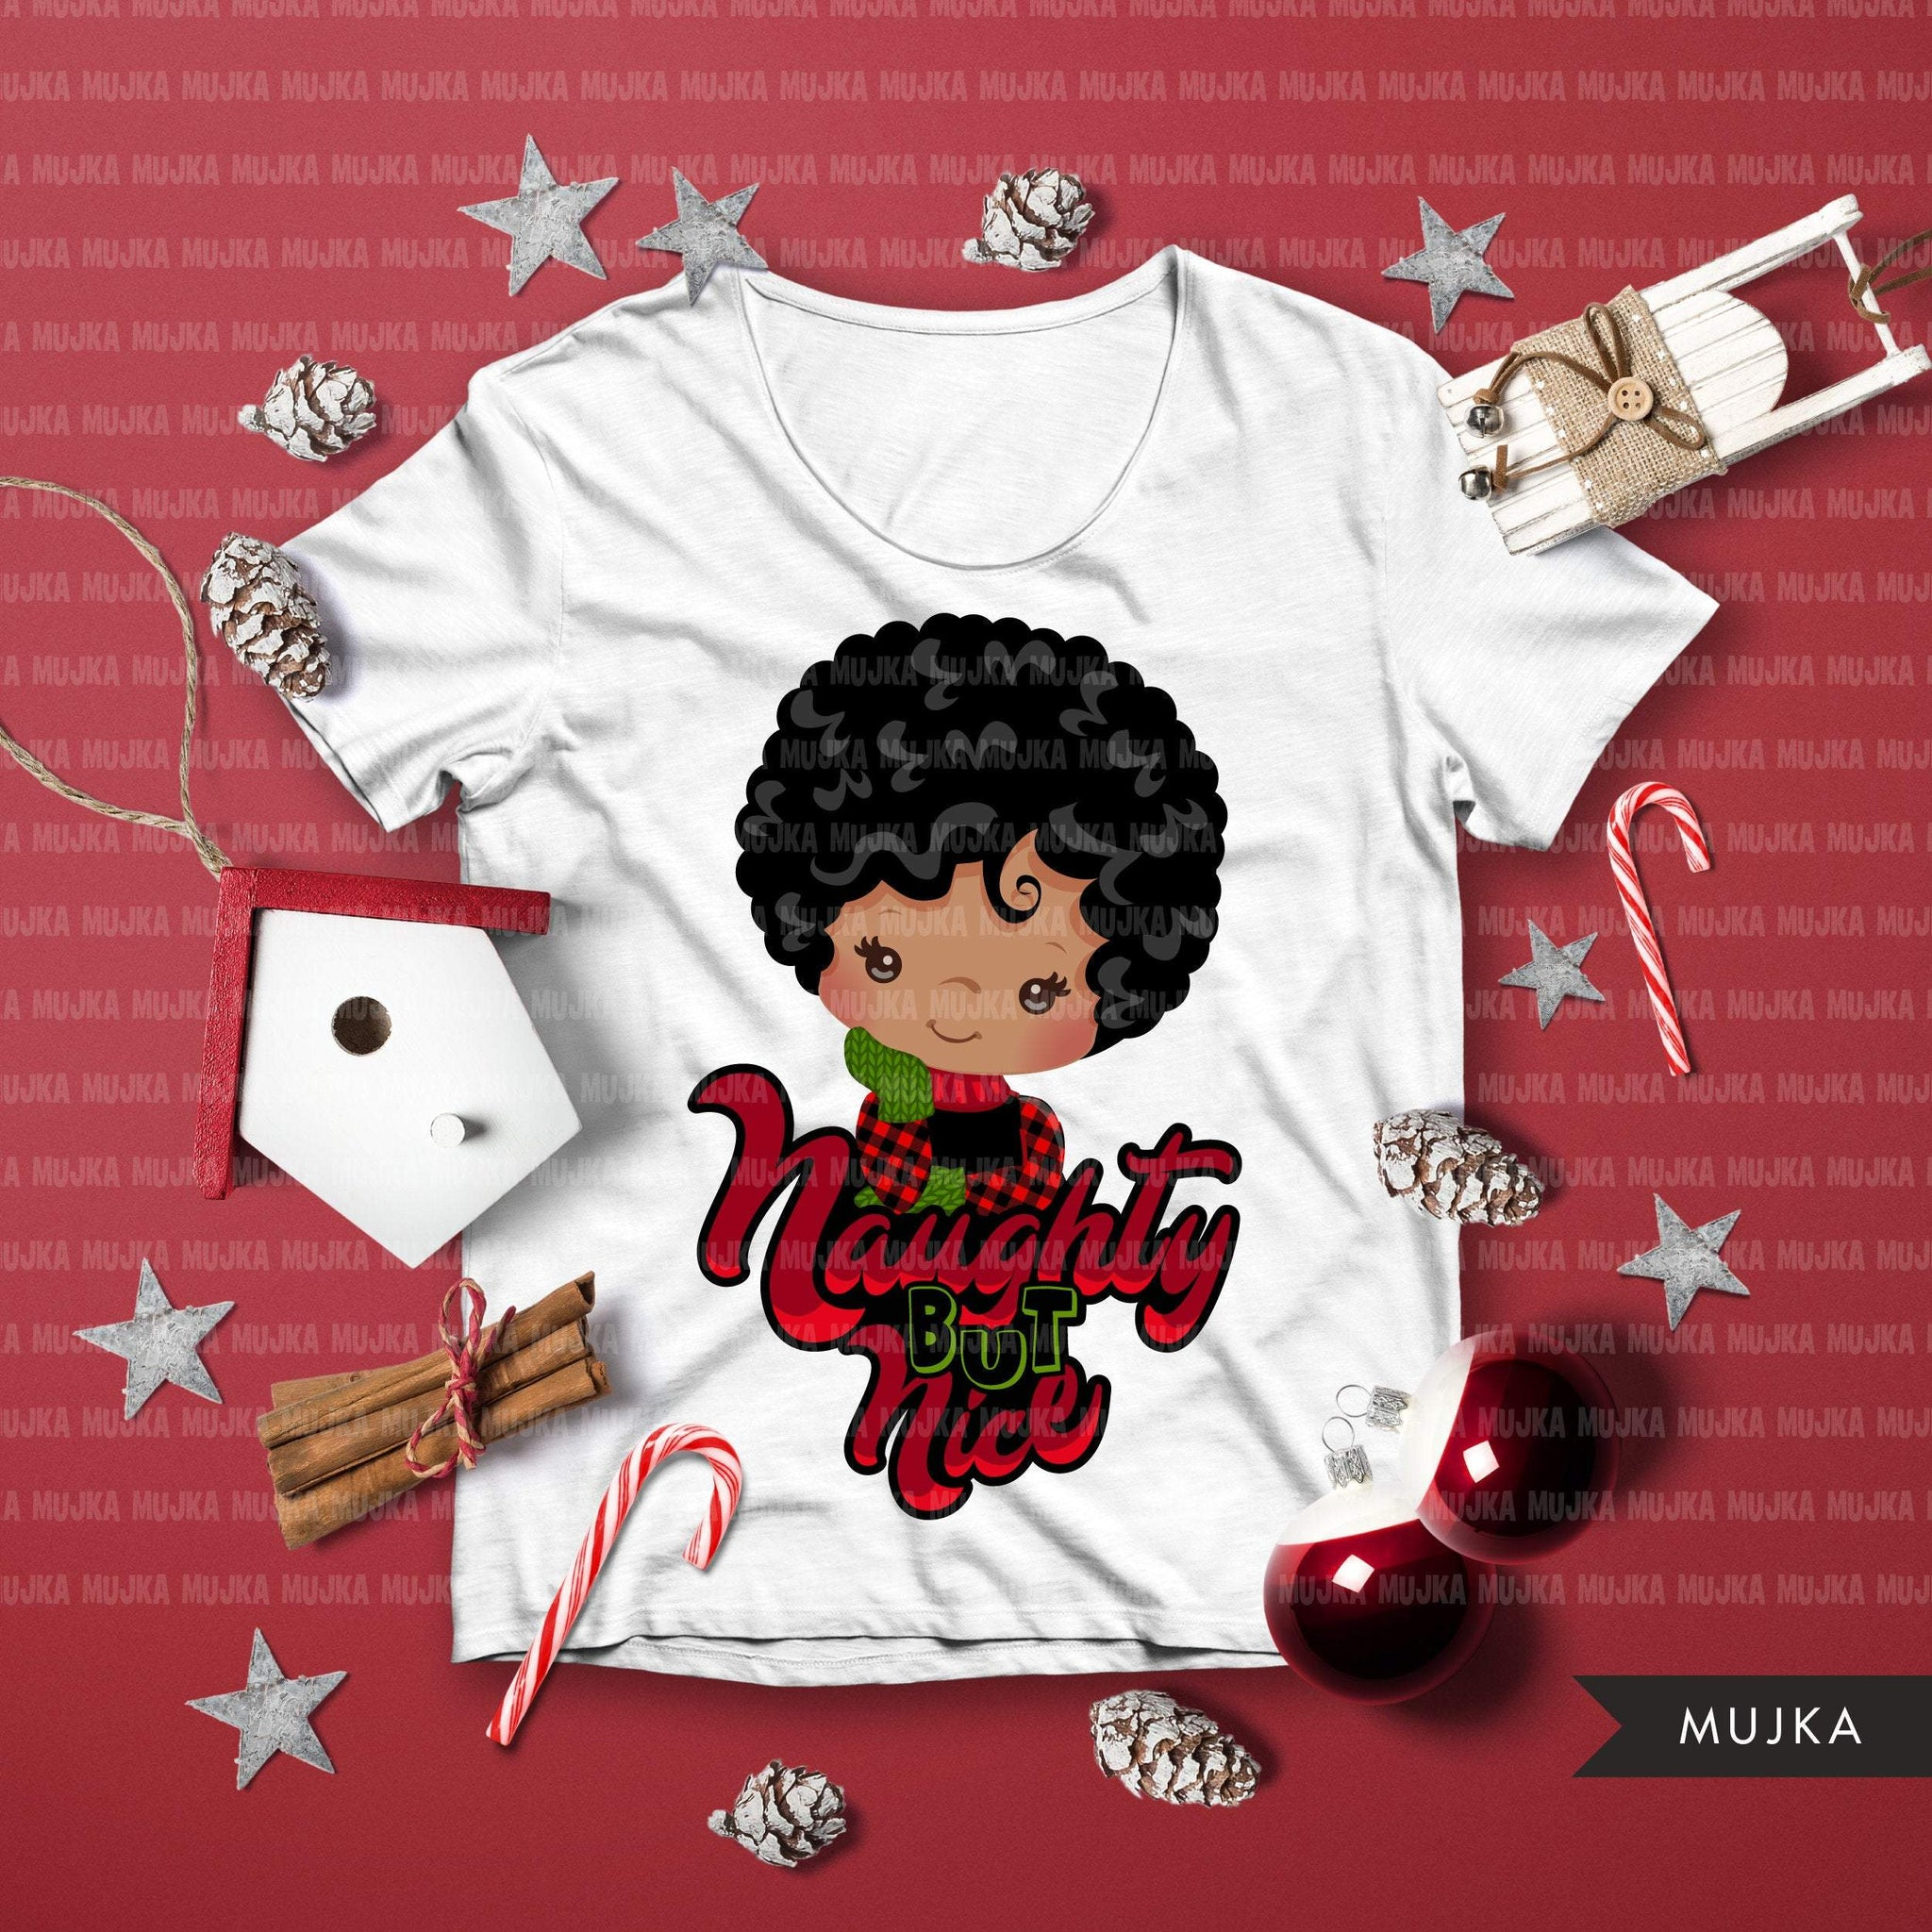 Christmas SVG PNG digital, Naughty but Nice HTV sublimation image transfer clipart, t-shirt graphics, Afro Plaid little girl characters